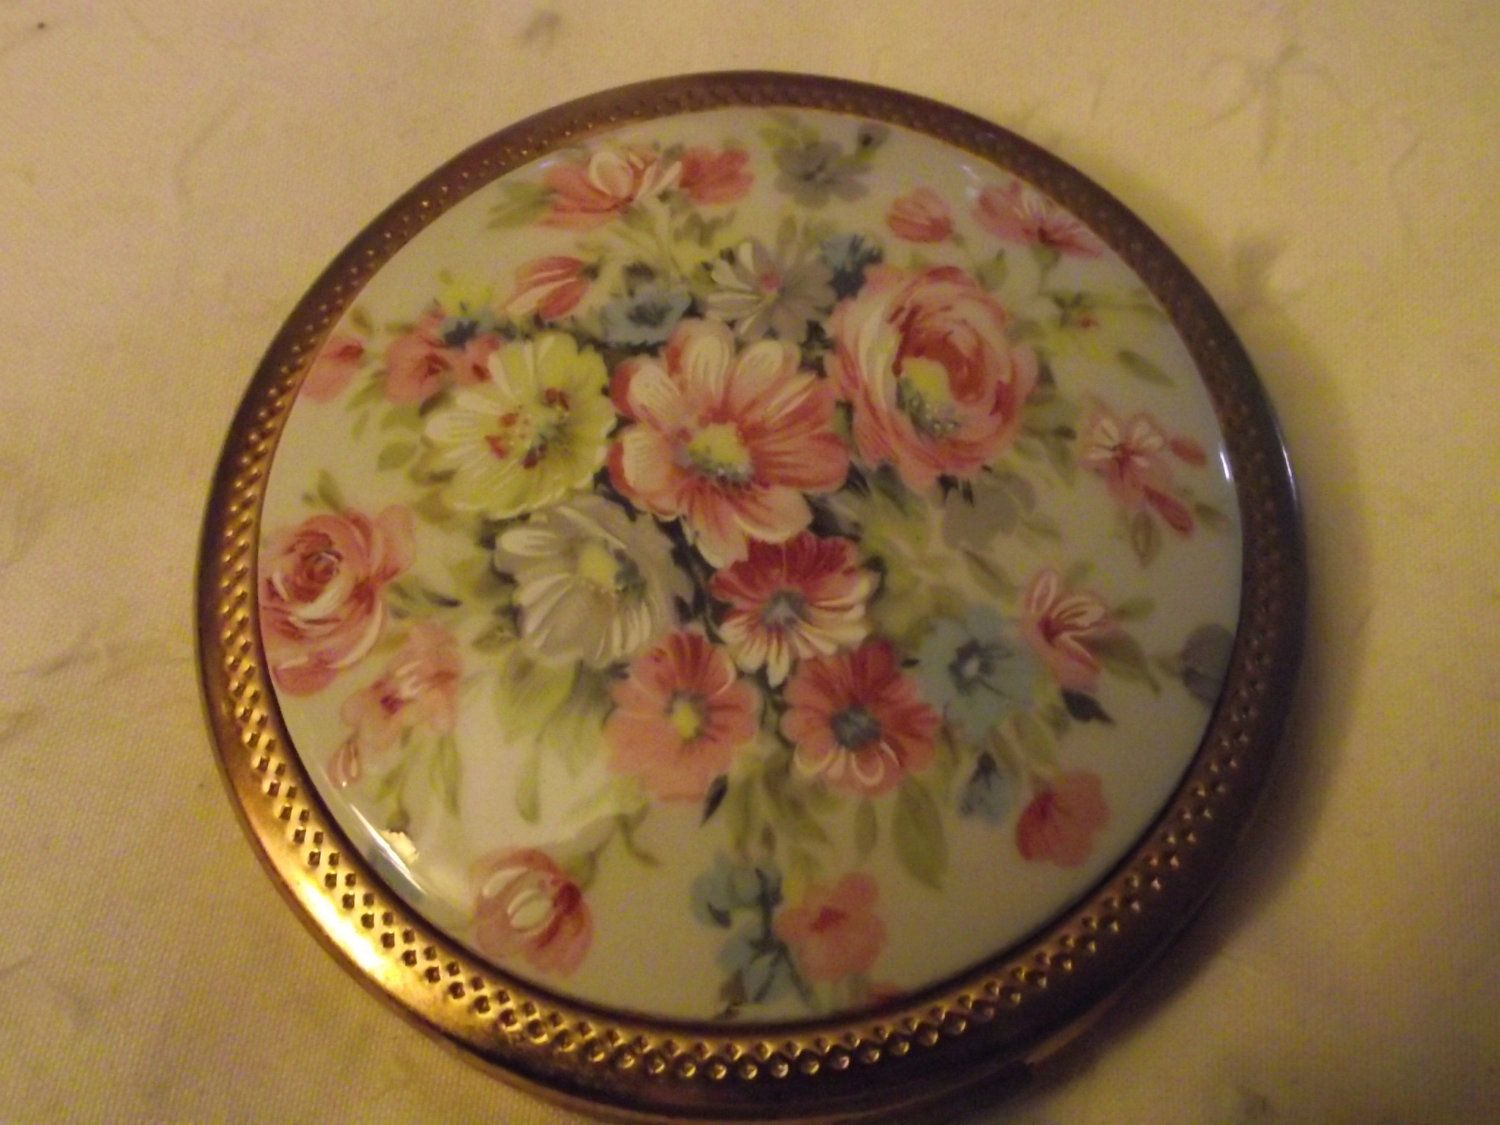 vintage powder compact with porcelain inset